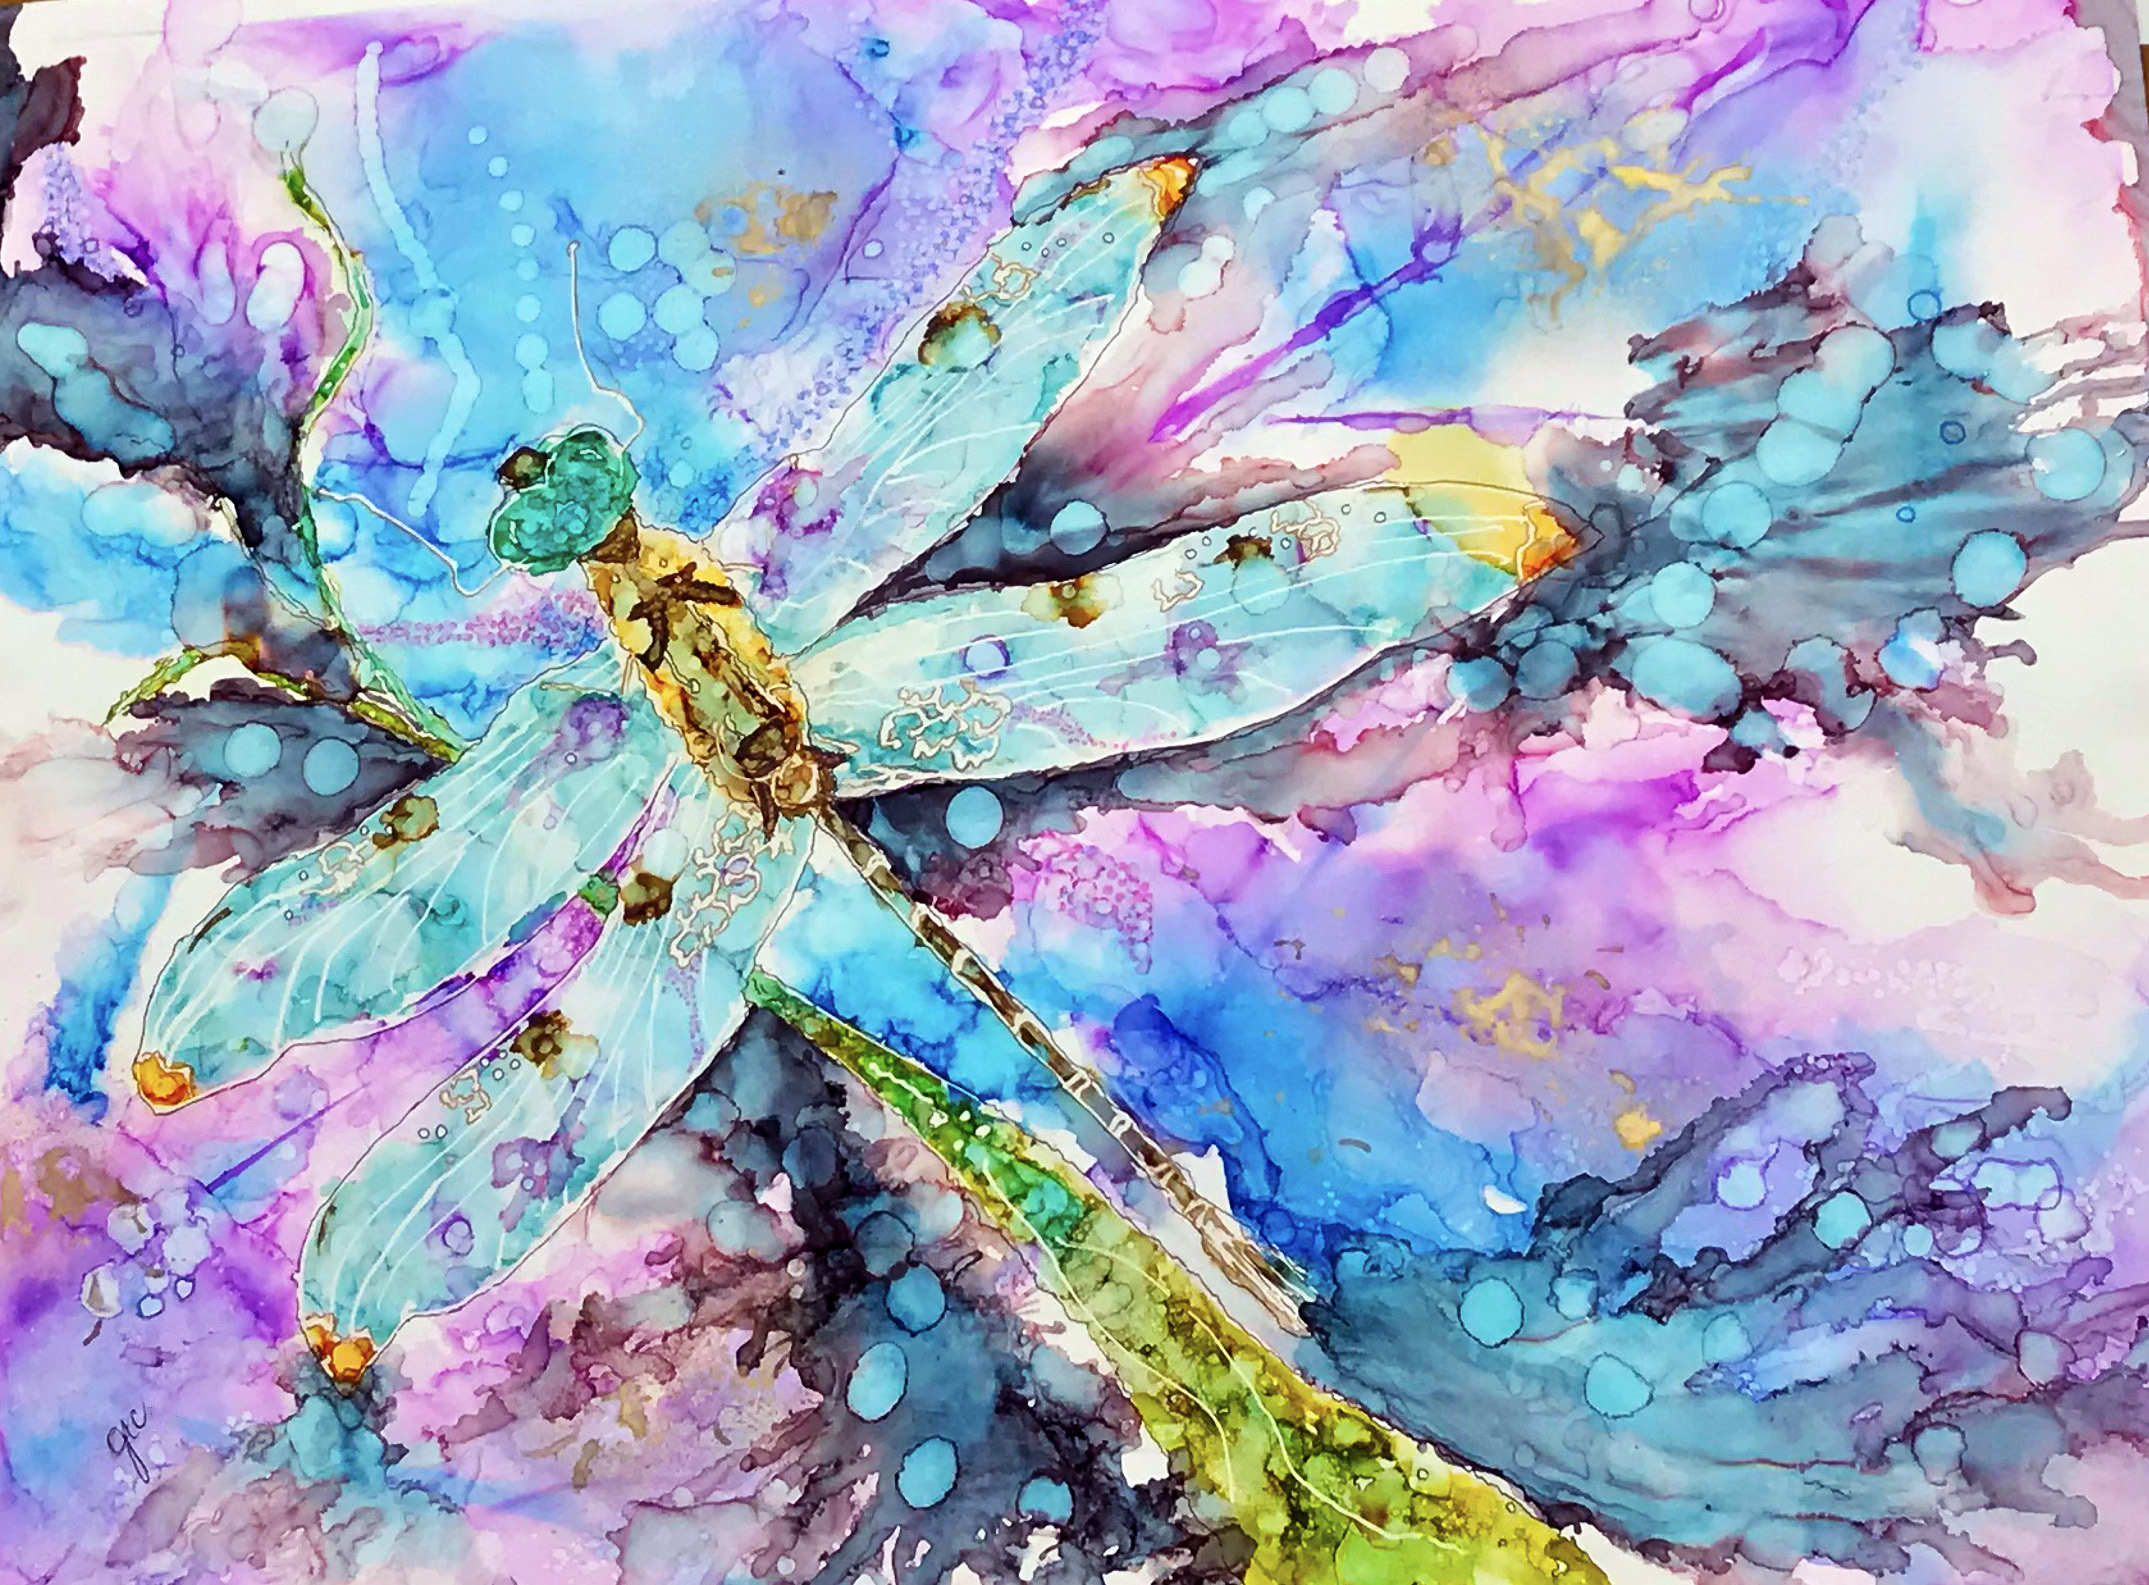 The Transformation of the Dragonfly